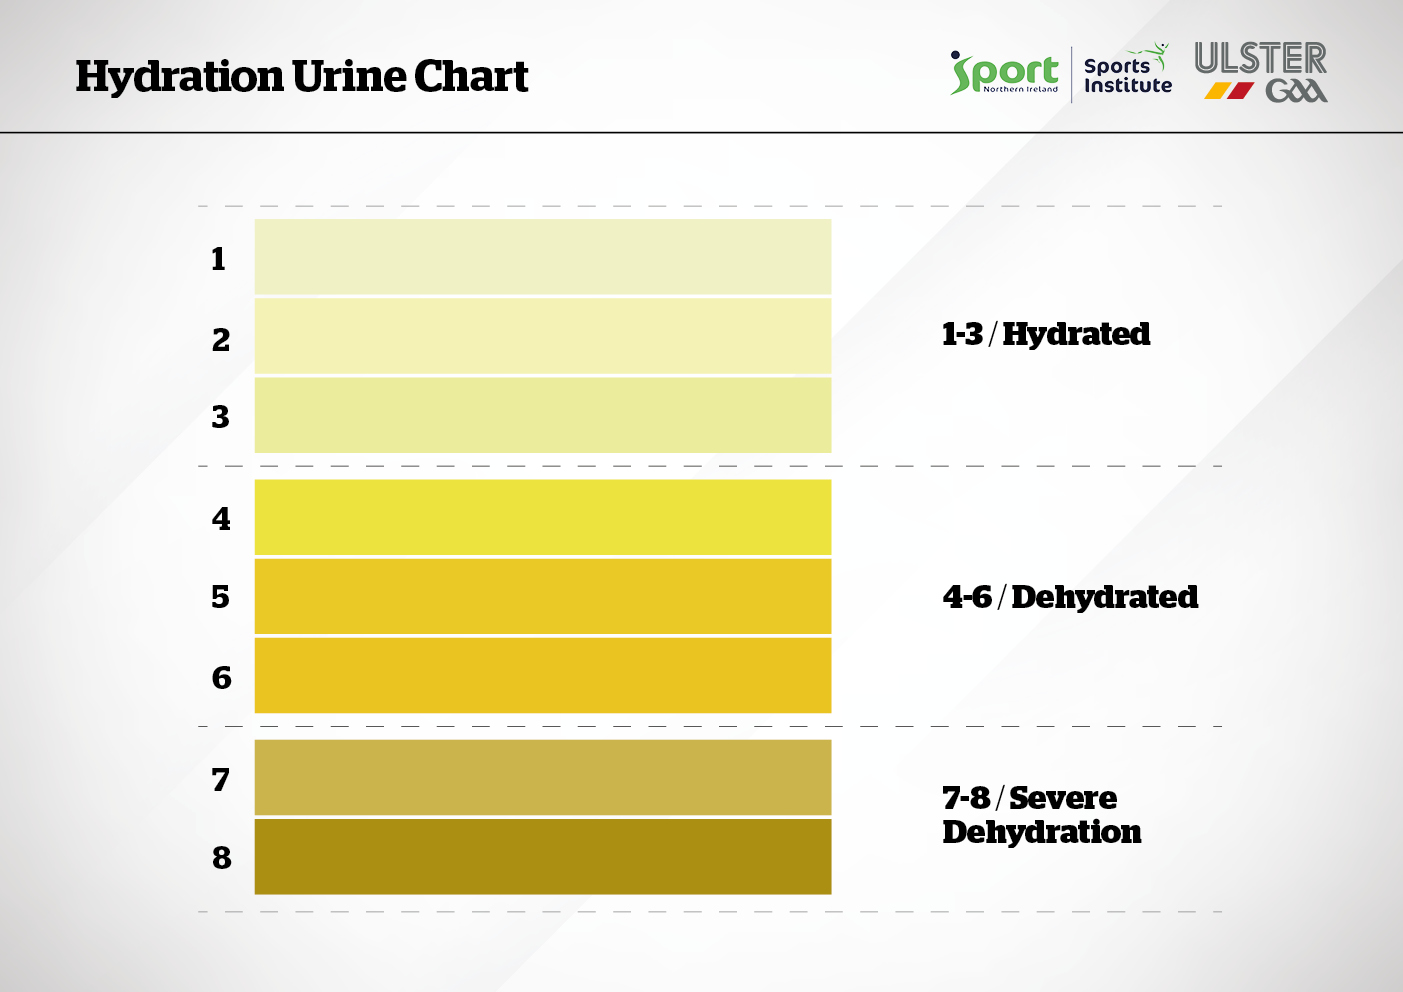 Hydration Urine Chart